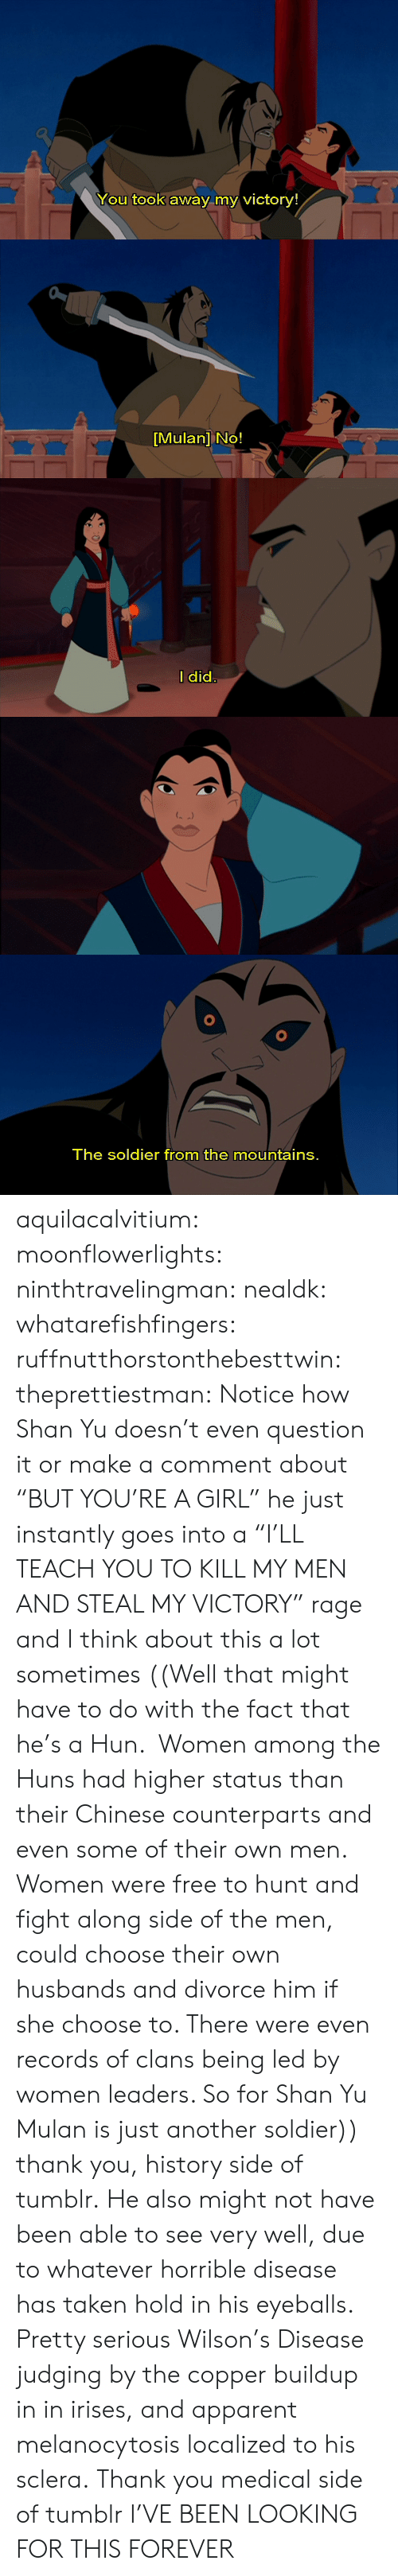 "apparent: You took away my victory!   [Mulan] No!   l did   The soldier from the mountains. aquilacalvitium: moonflowerlights:  ninthtravelingman:  nealdk:  whatarefishfingers:  ruffnutthorstonthebesttwin:  theprettiestman:  Notice how Shan Yu doesn't even question it or make a comment about ""BUT YOU'RE A GIRL"" he just instantly goes into a ""I'LL TEACH YOU TO KILL MY MEN AND STEAL MY VICTORY"" rage and I think about this a lot sometimes  ((Well that might have to do with the fact that he's a Hun.  Women among the Huns had higher status than their Chinese counterparts and even some of their own men. Women were free to hunt and fight along side of the men, could choose their own husbands and divorce him if she choose to. There were even records of clans being led by women leaders. So for Shan Yu Mulan is just another soldier))  thank you, history side of tumblr.  He also might not have been able to see very well, due to whatever horrible disease has taken hold in his eyeballs.  Pretty serious Wilson's Disease judging by the copper buildup in in irises, and apparent melanocytosis localized to his sclera.  Thank you medical side of tumblr   I'VE BEEN LOOKING FOR THIS FOREVER"